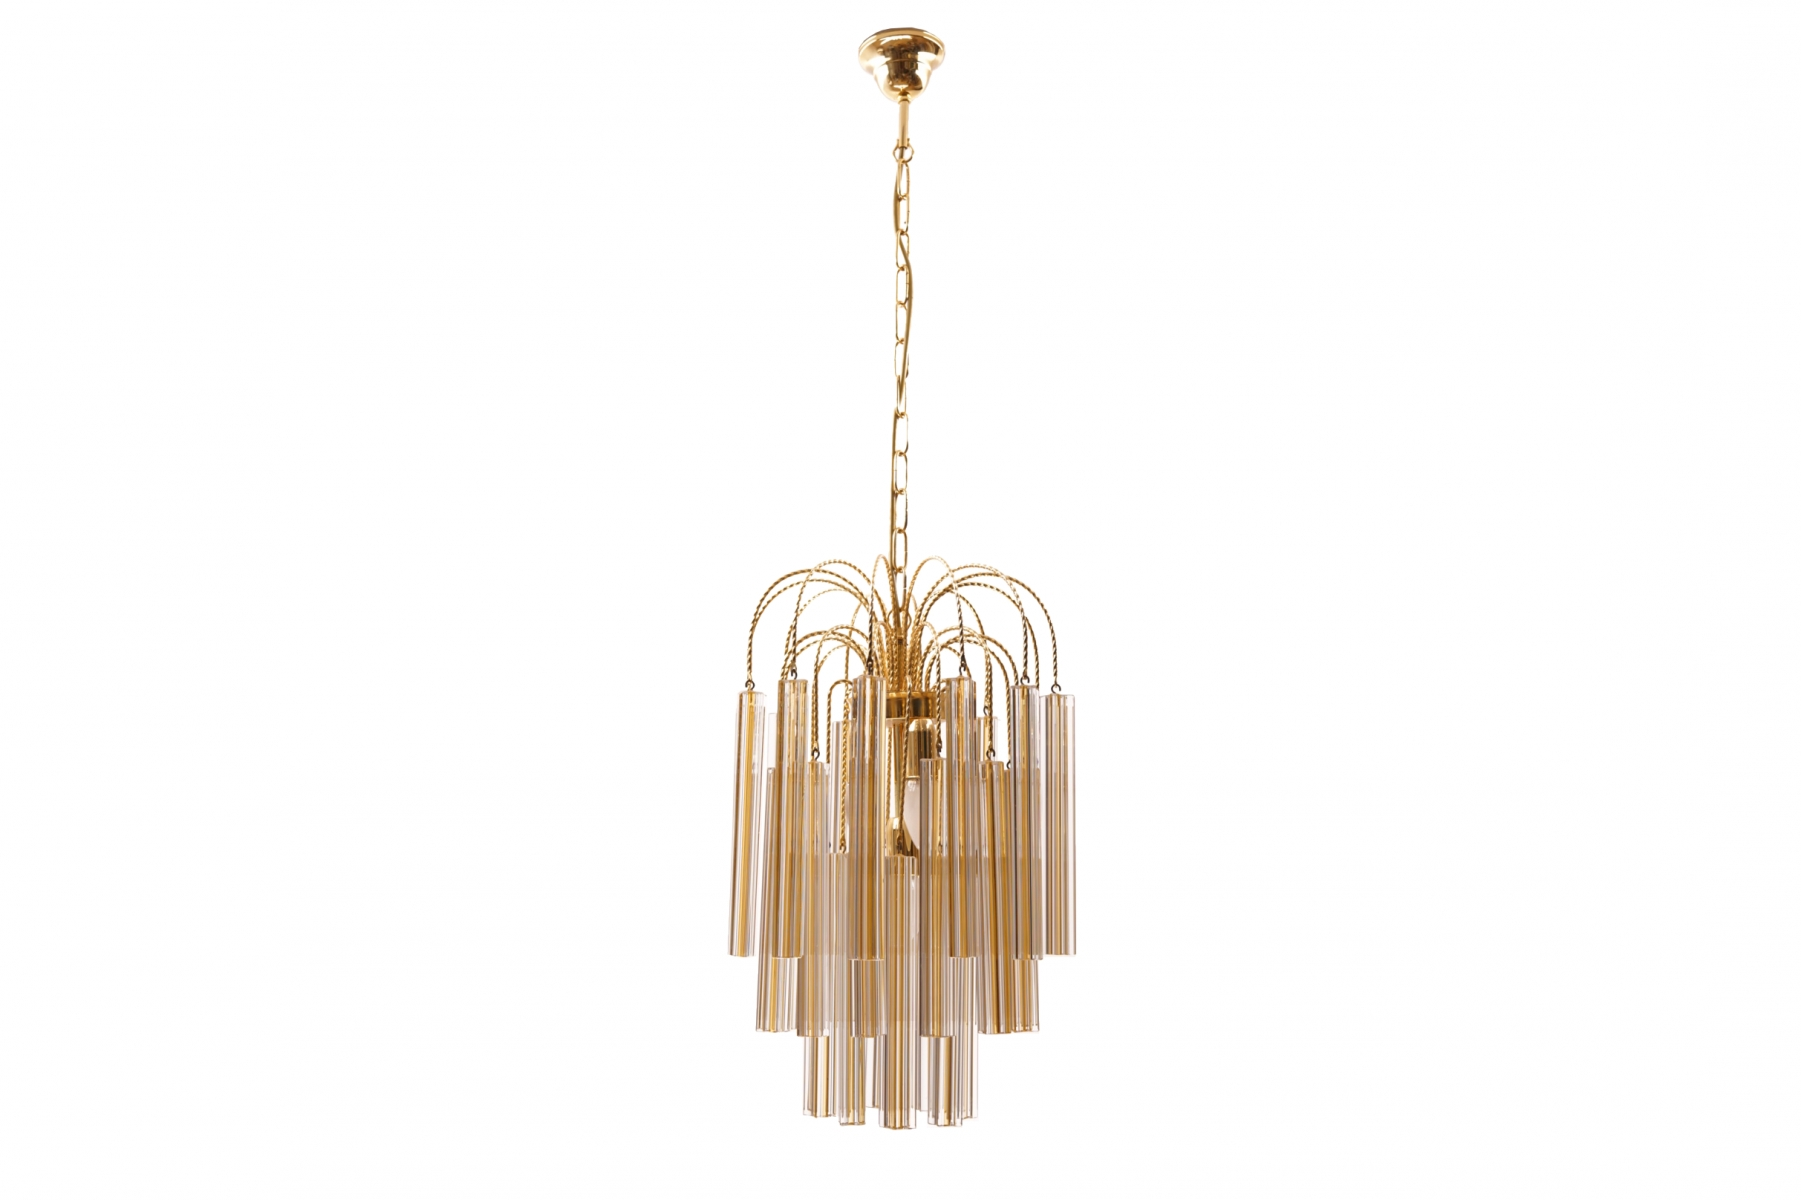 2018 Vintage Chandelier With Vintage Chandelier With Murano Glass From Venini For Sale At Pamono (View 2 of 15)